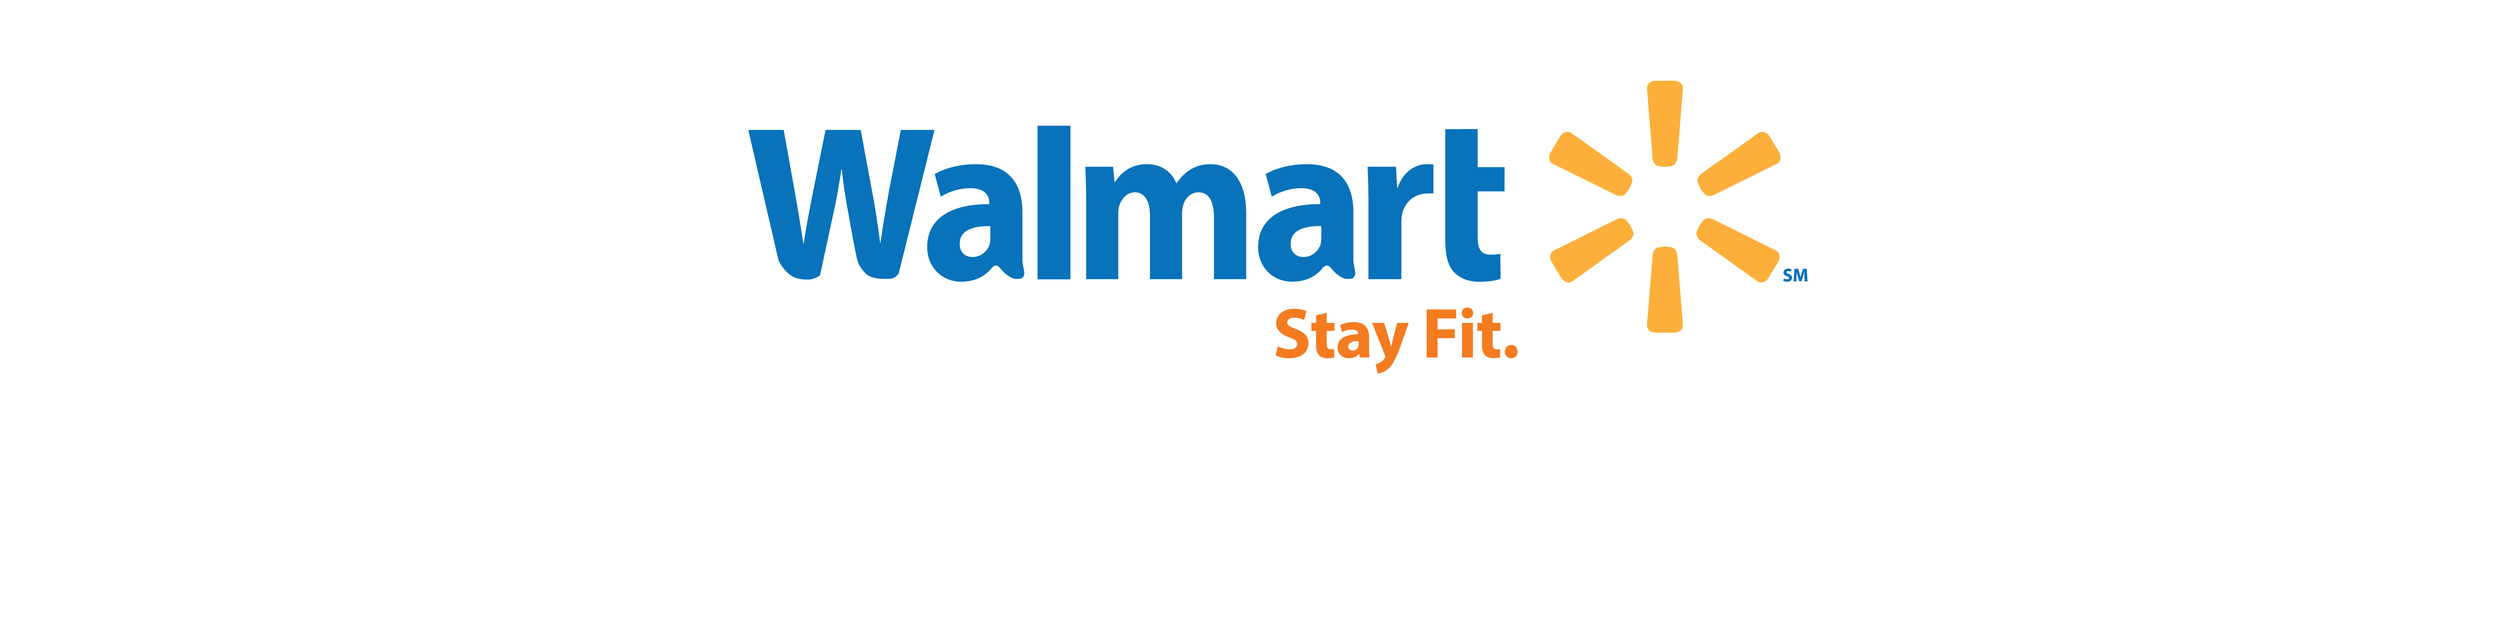 DISCLAIMER: This personal project may not reflect the views or plans of Walmart.